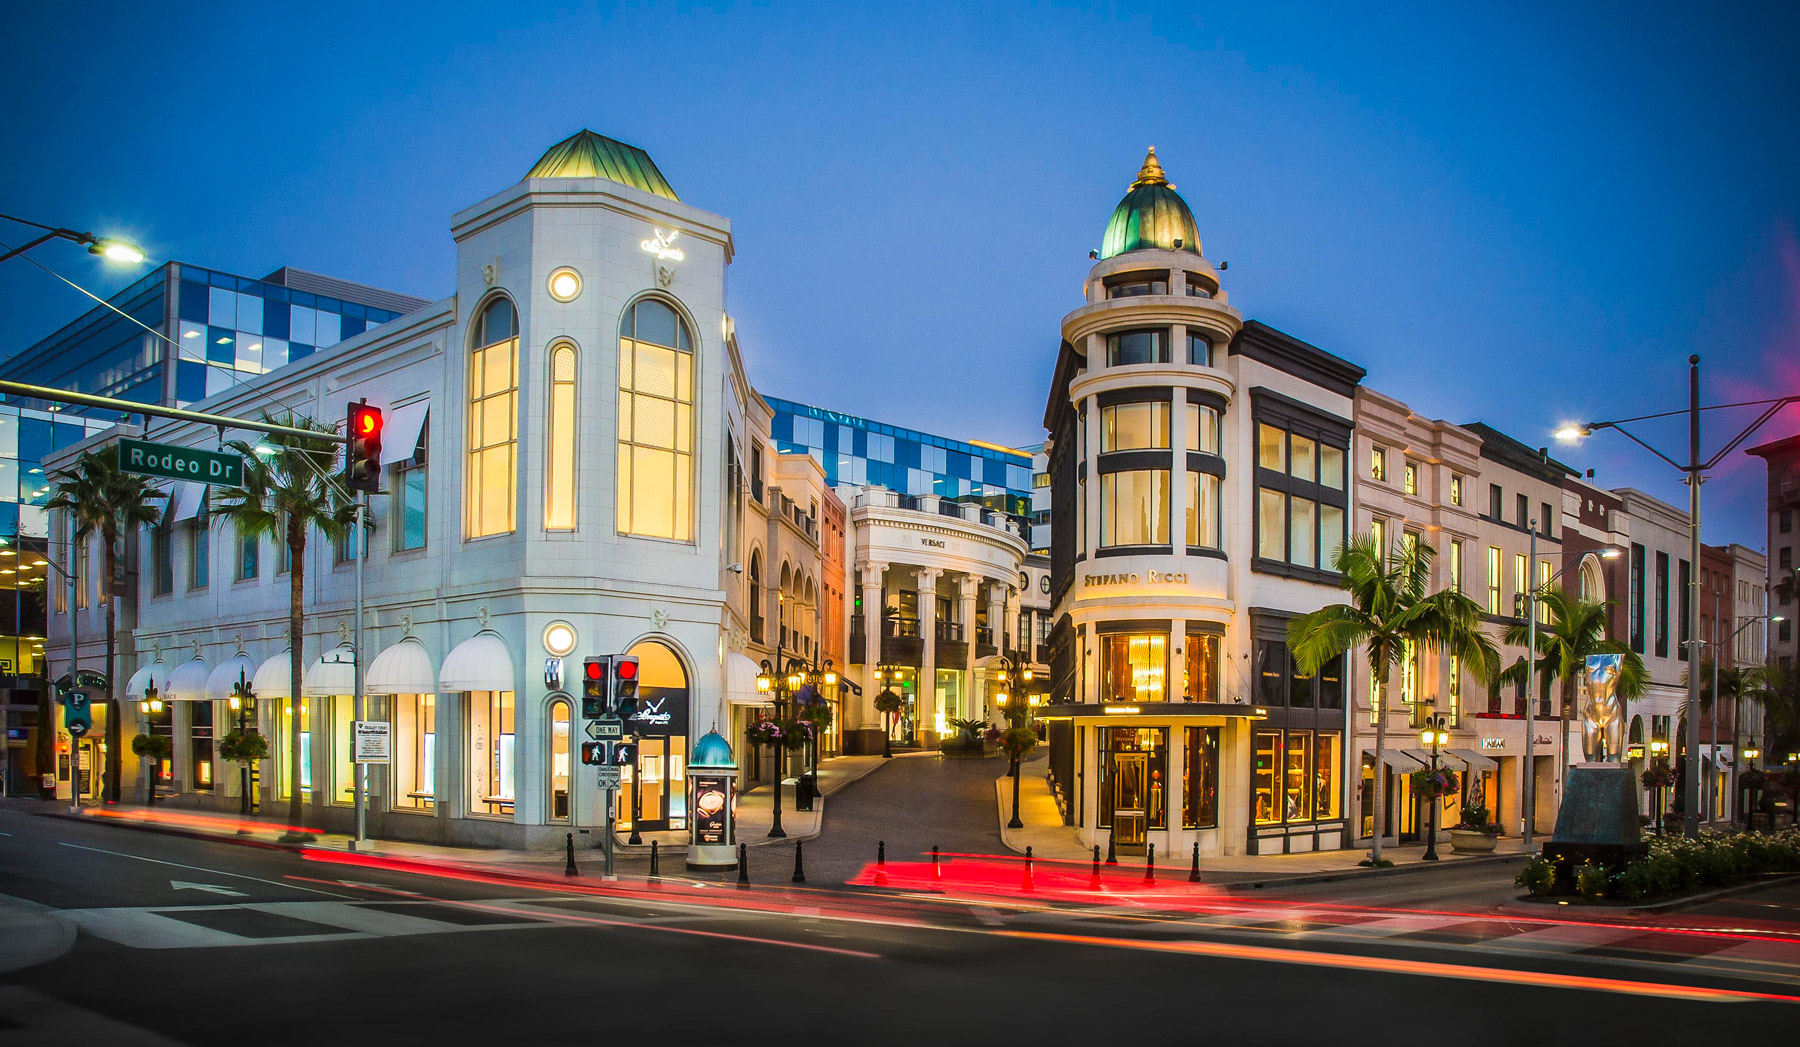 Rodeo Drive and Dayton Way intersection in Beverly Hills